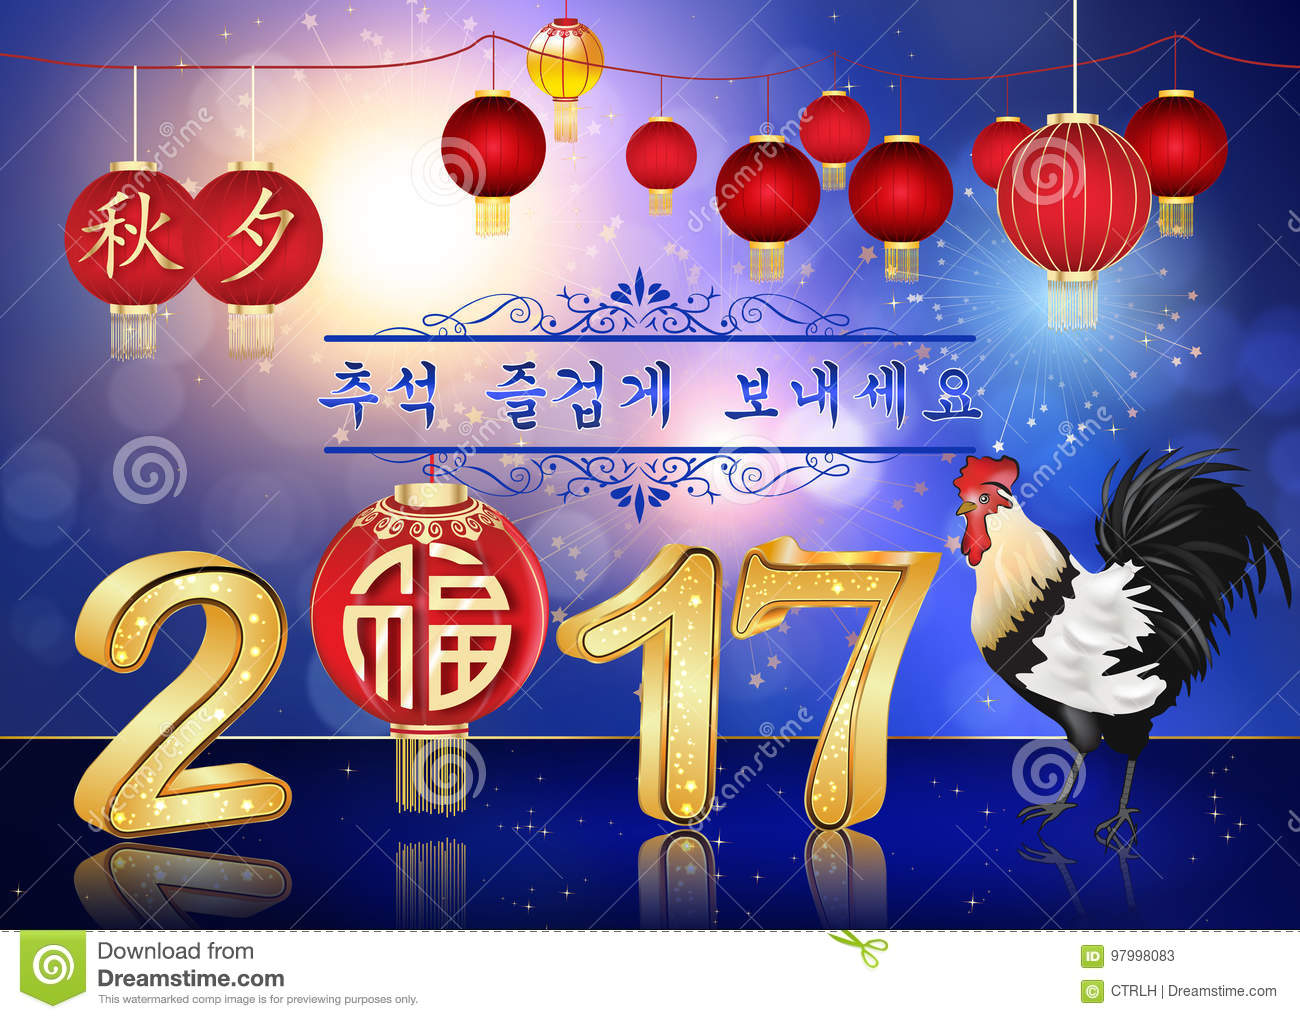 Korean moon festival greeting card for year 2017 stock illustration korean moon festival greeting card for year 2017 kristyandbryce Images